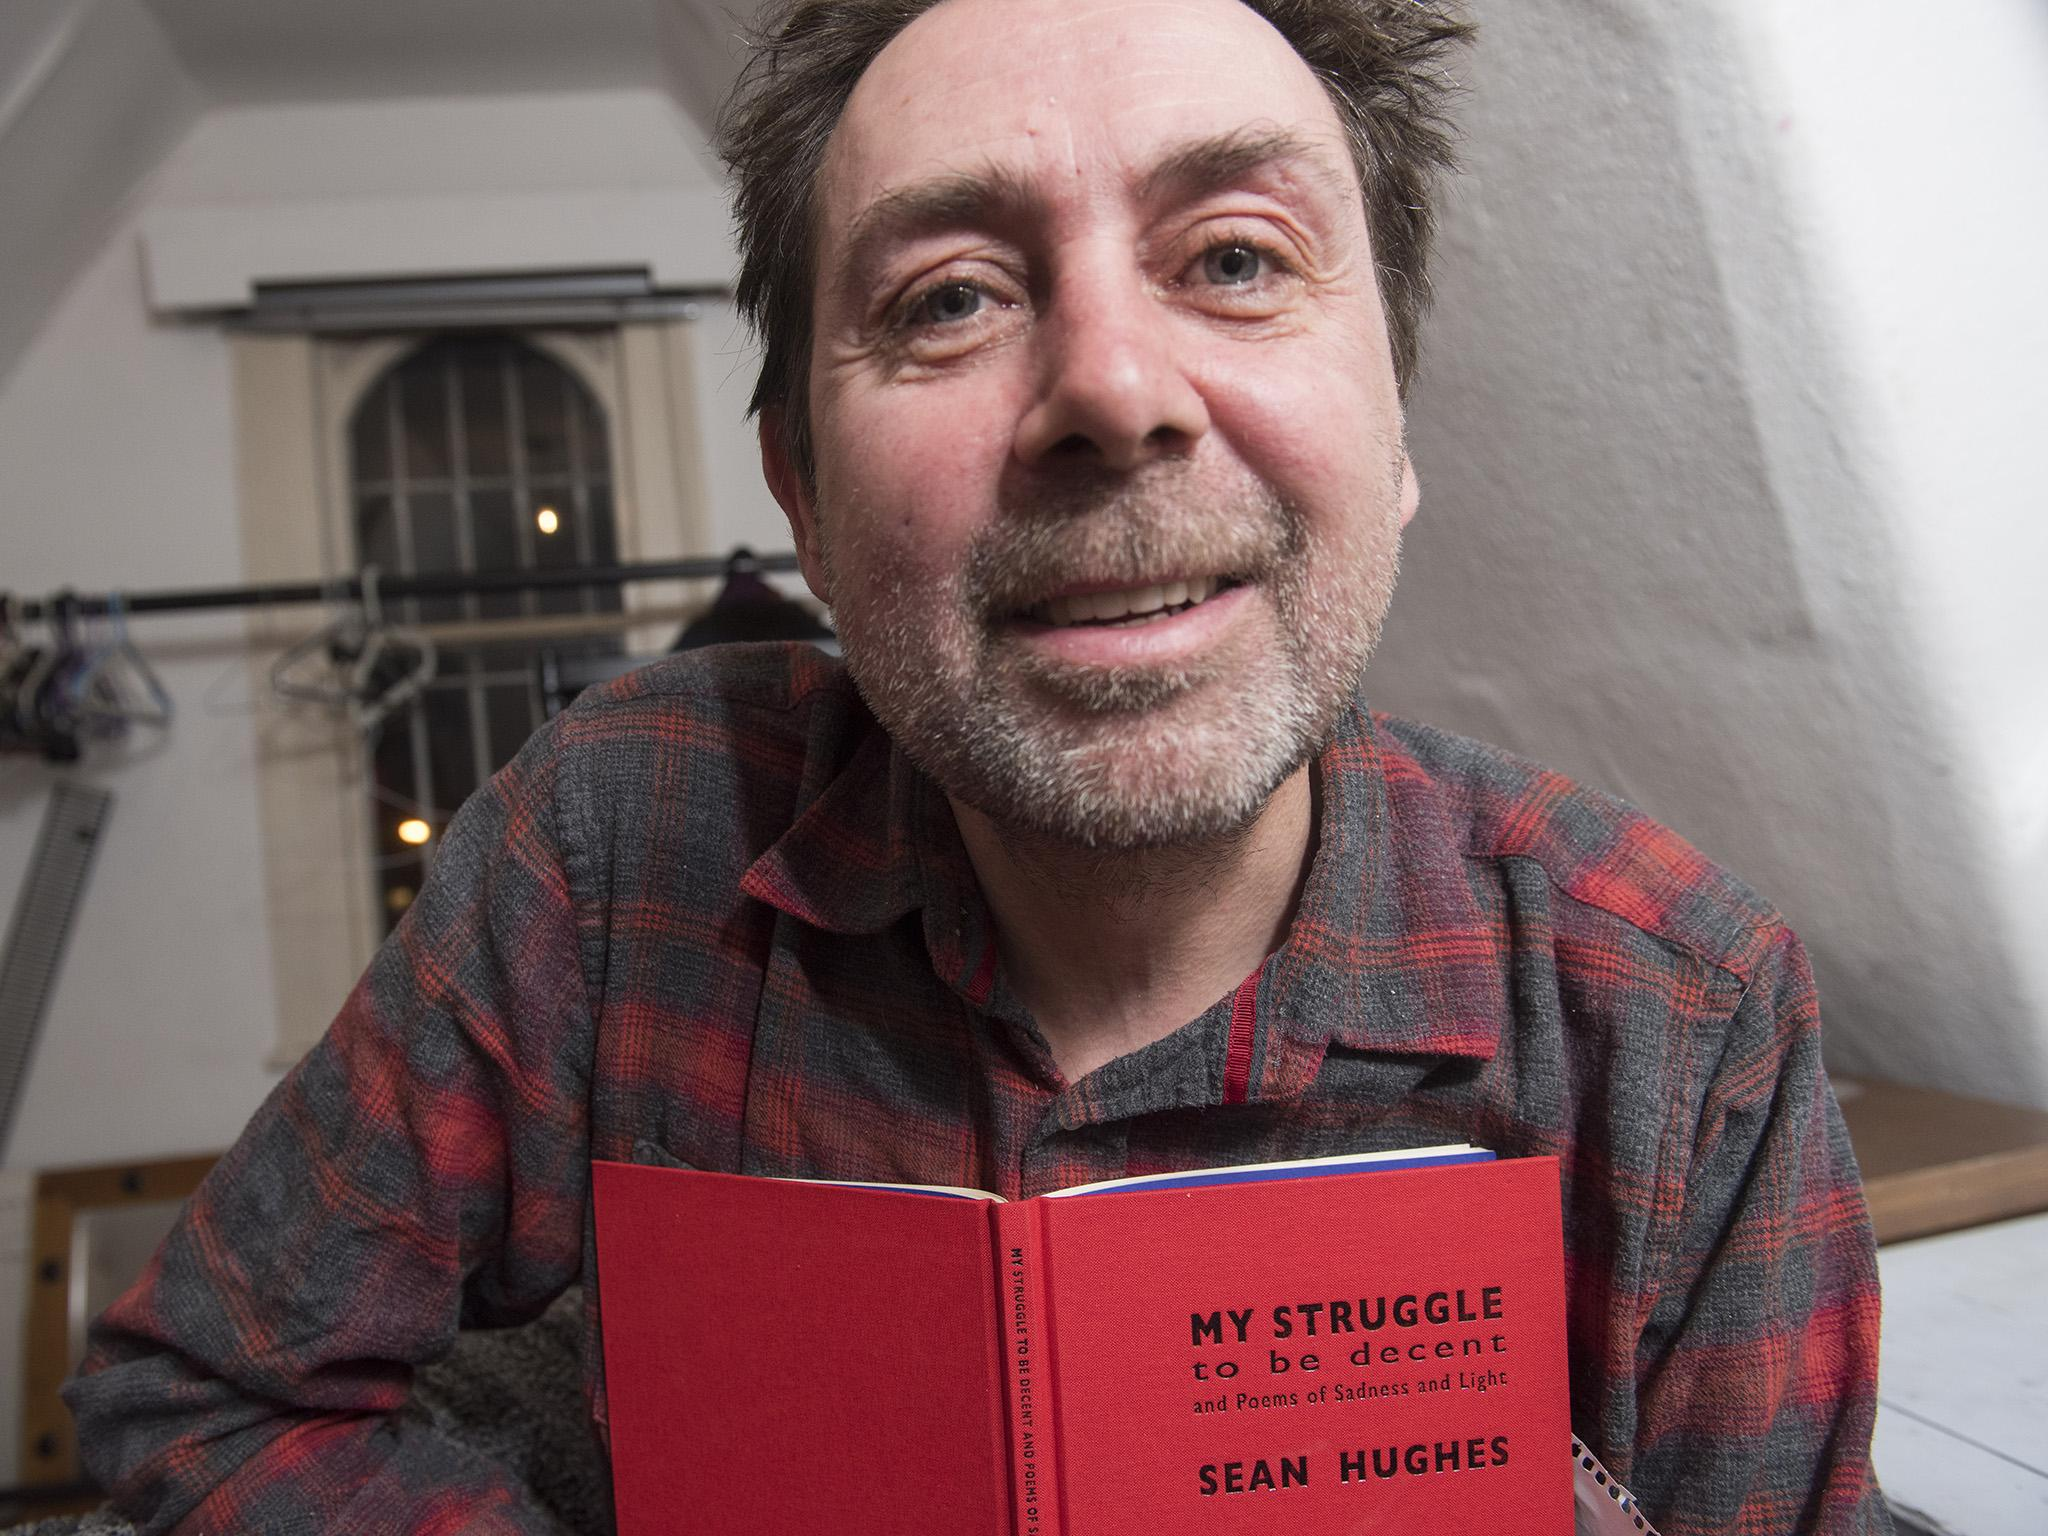 Sean Hughes dead: Irish comedian and Never Mind the Buzzcocks captain dies aged 51